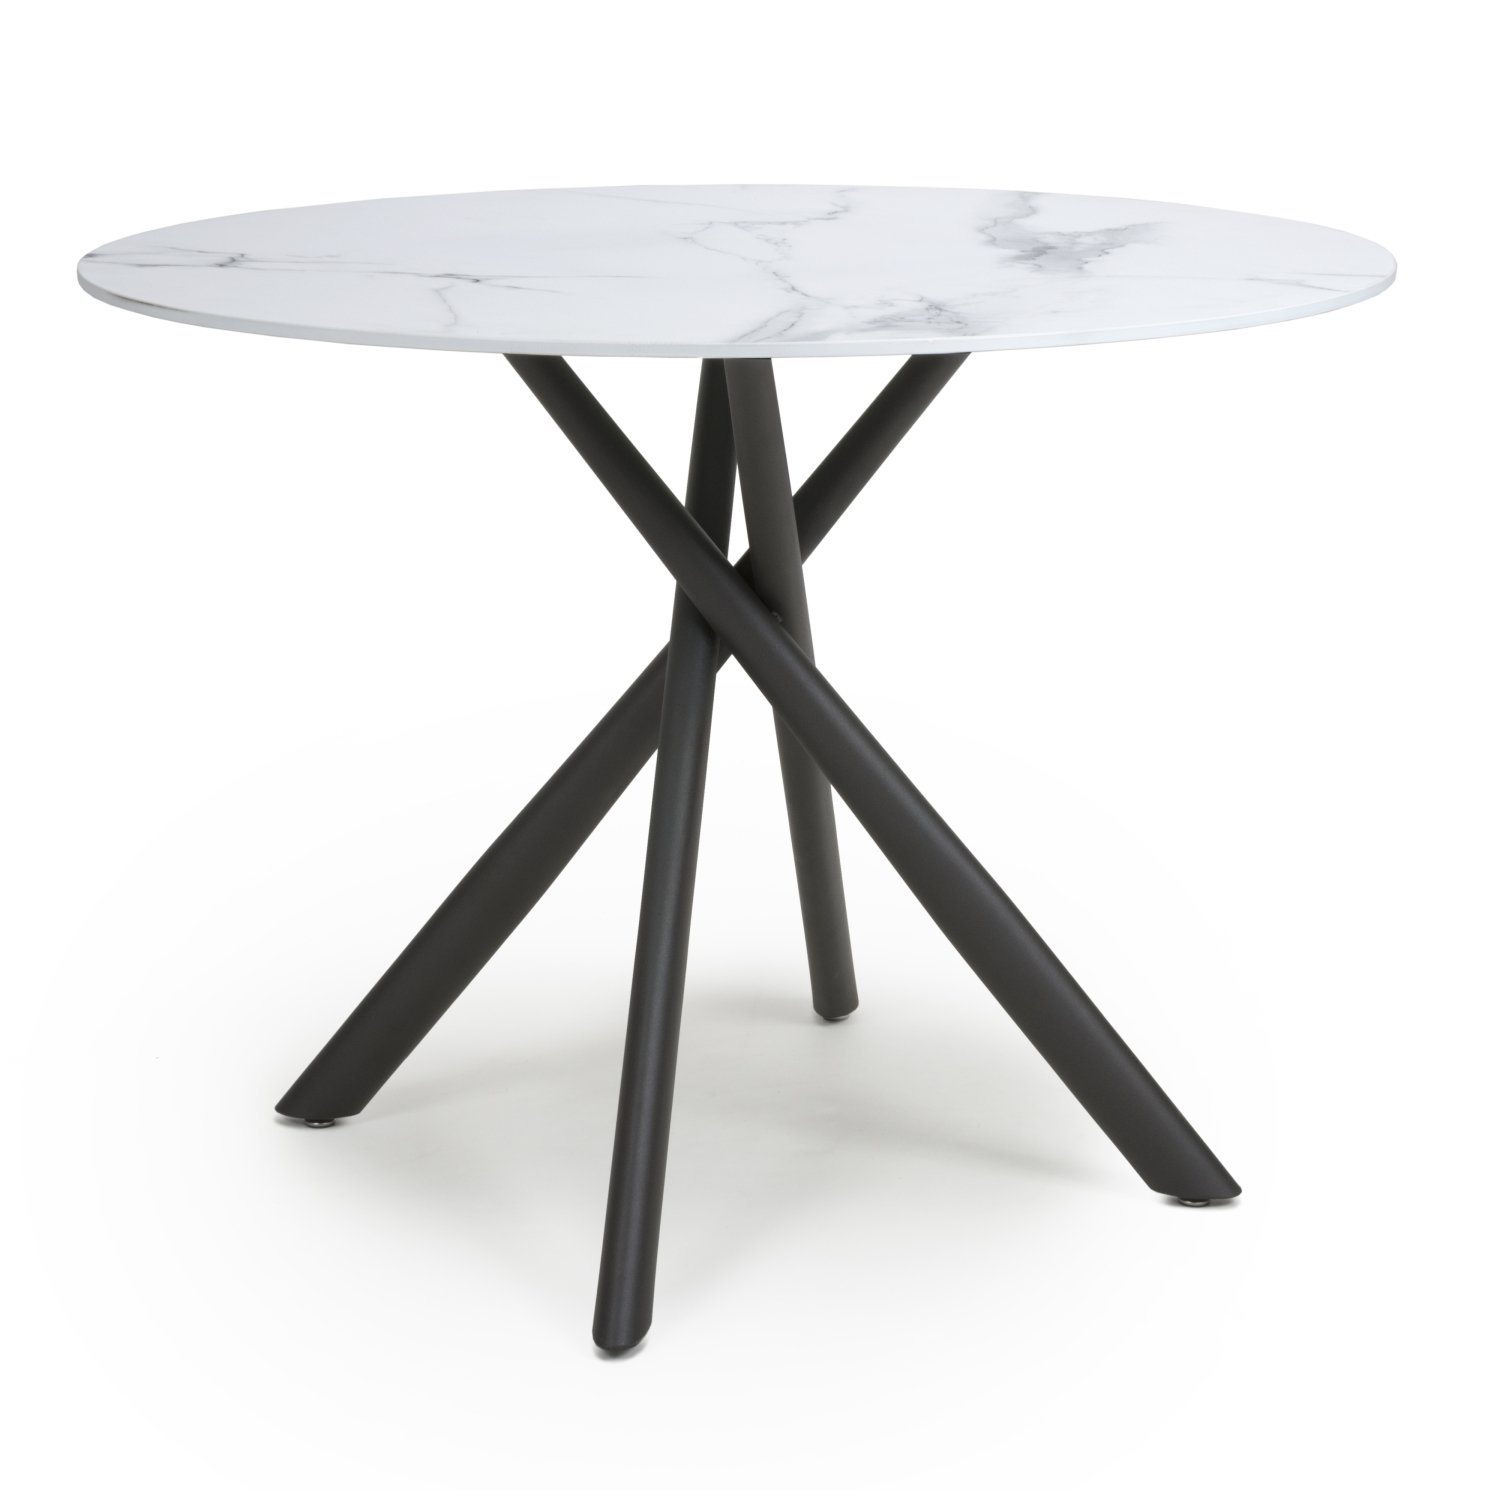 Avensis 1m Round Marble Effect White Glass Dining Table